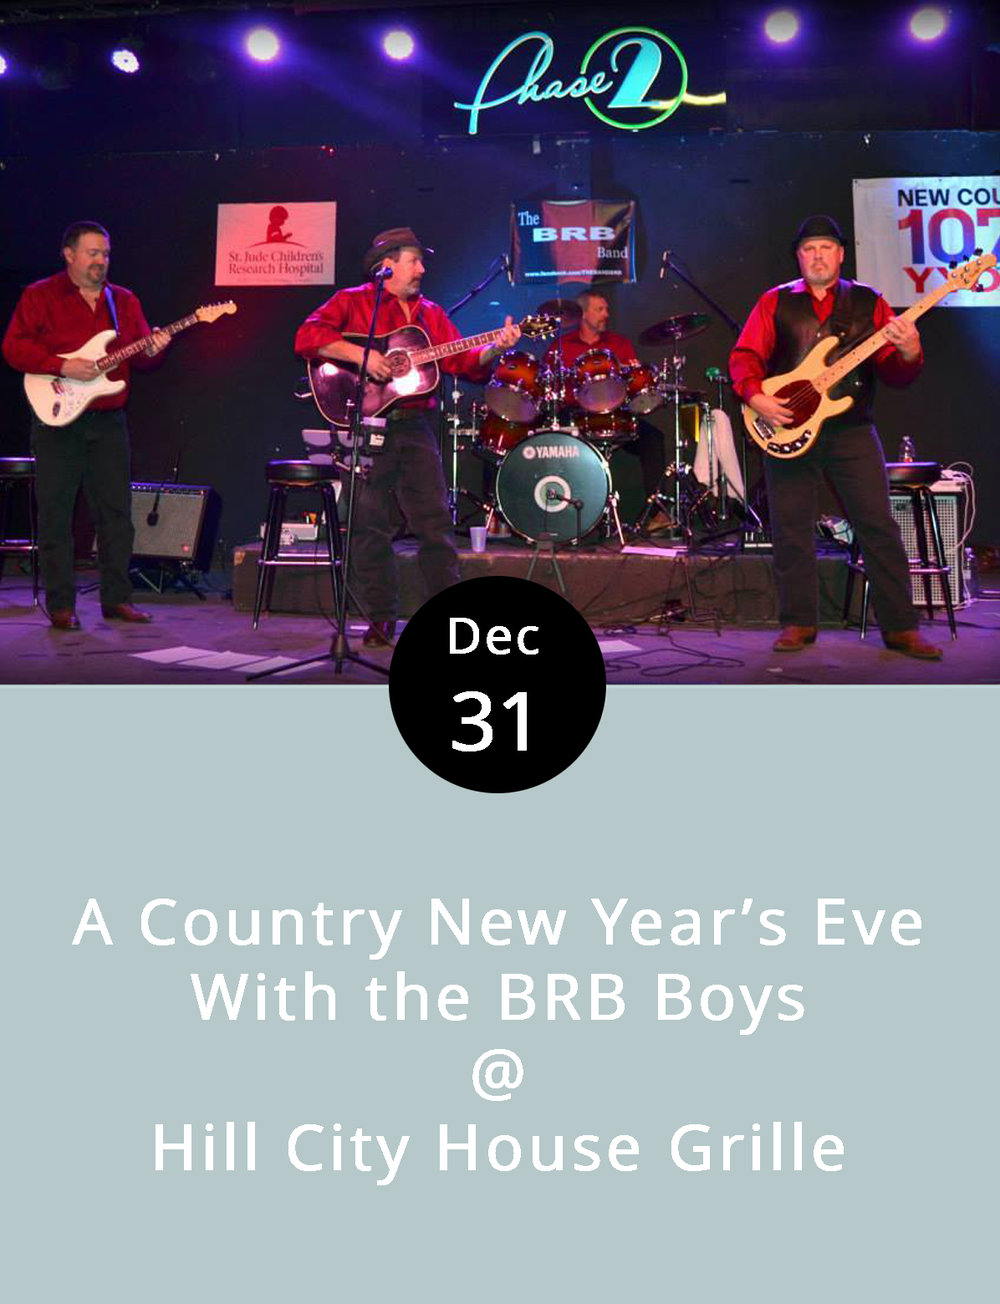 The Hill City House Grille is leaning in the general direction of Merle, Waylon, and Willie for its New Year's entertainment, as in Haggard, Jennings, and Nelson. Cowboy boots and Stetsons are optional, but a few tunes by the likes of George Jones and Conway Twitty are an absolute requirement when Rustburg's BRB Boys are in the house. That's Bo, Ronnie, and Billy, and they specialize in classic country music – the good stuff. They don't go on until 9 p.m. Prior to that, local singer-songwriter and friend of the site Josh Walker will warm up the dinnertime crowd starting at 5 p.m. The Hill City House Grille is offering a three-course early-bird dinner for two for $60, a $30 dinner for individuals, and a $15 champagne toast for those who arrive after dinner. Call (434) 237-6110 for reservations. The Hill City House Grille is located at 7001 Timberlake Rd., right off of Rte. 501.    http://www.hillcityhouse.com/event/new-years-eve-fun/